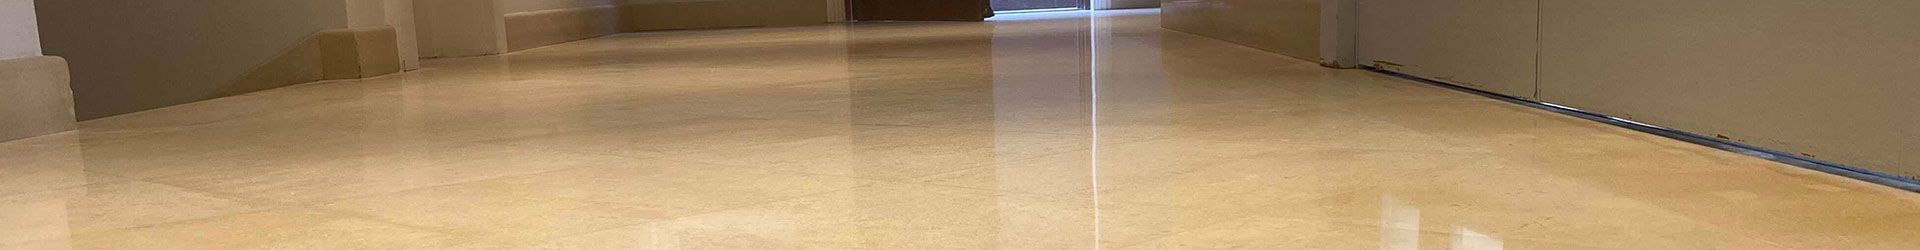 Limestone Floor Cleaning How to